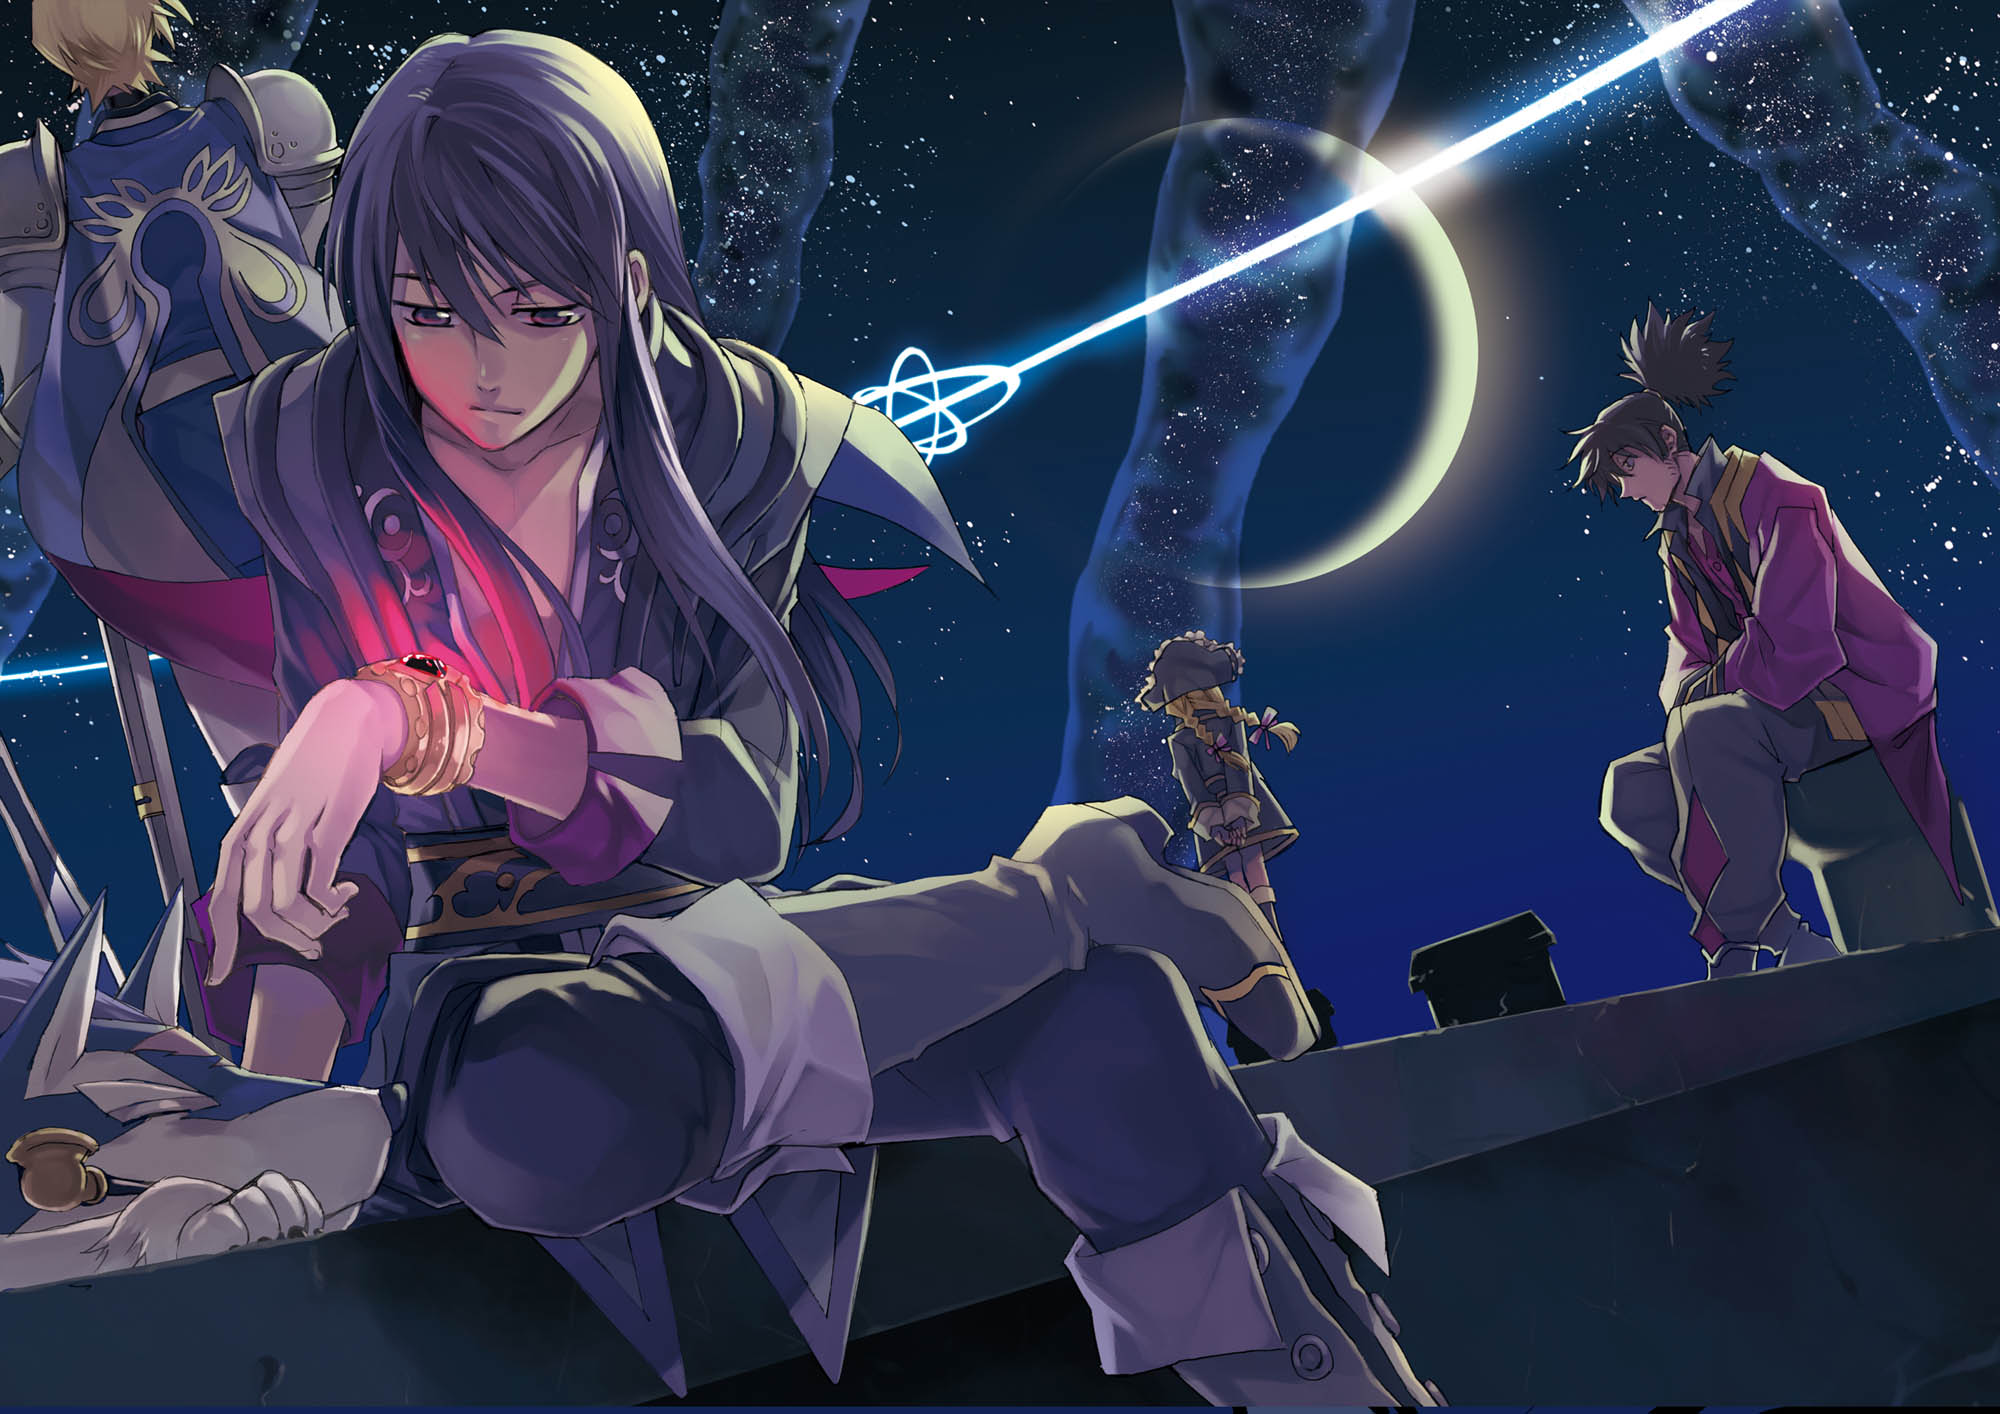 Tales Of Vesperia Computer Wallpapers Desktop Backgrounds 2000x1414 2000x1414